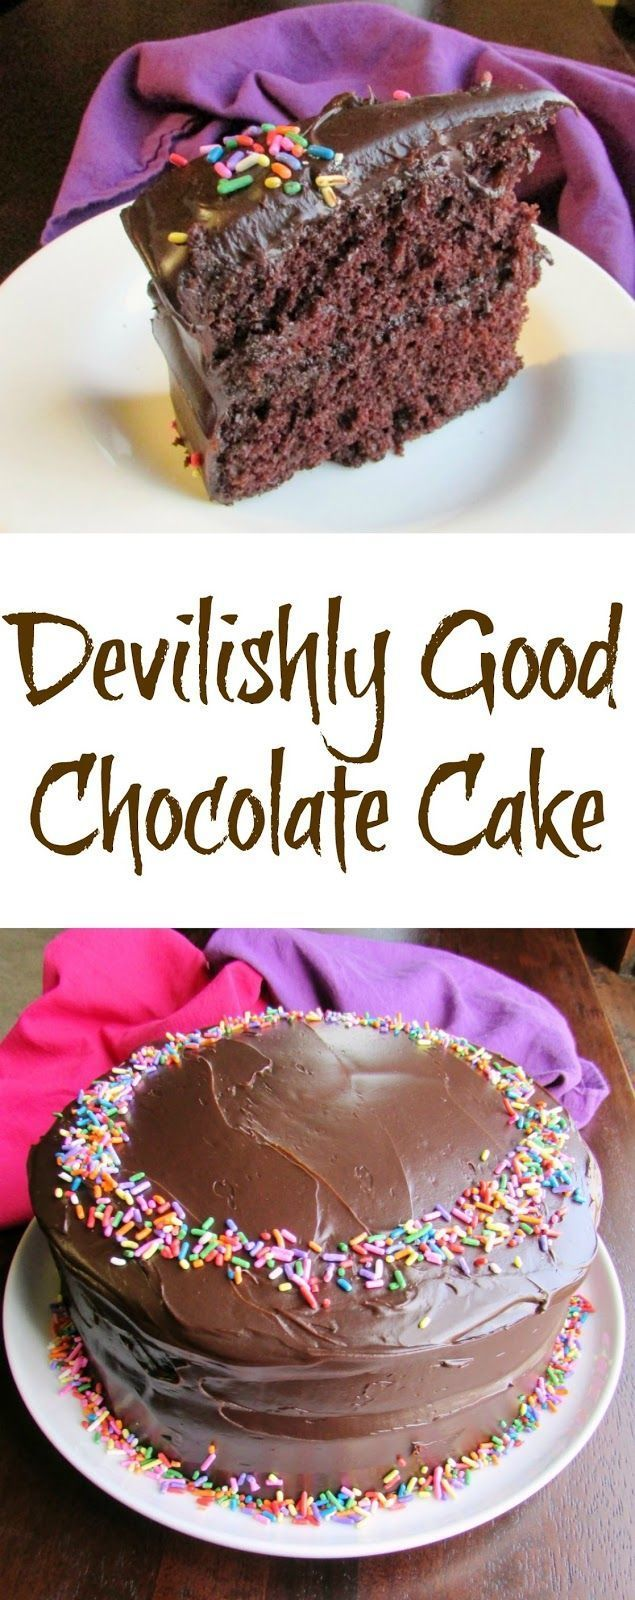 This Devilishly Good Chocolate cake is our FAVORITE chocolate cake to make.  It is from scratch, but ready in less than an hour with no mixer needed! So easy and so good!